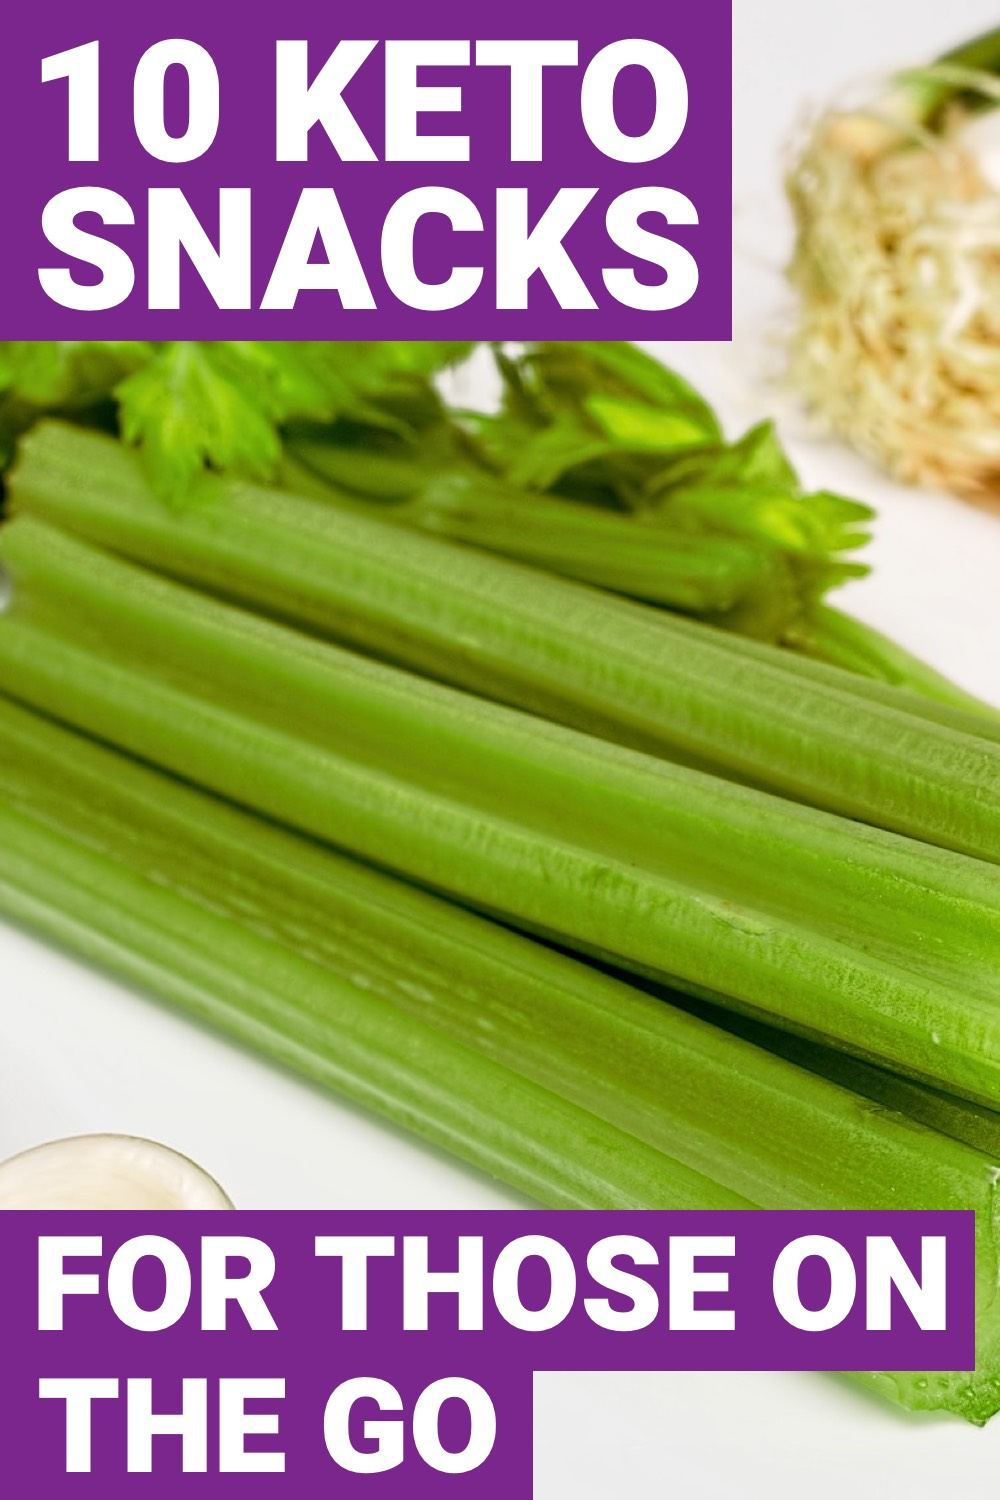 The ketogenic diet is filled with great foods that you can eat. These keto snacks will ensure you stay in ketosis no matter what.